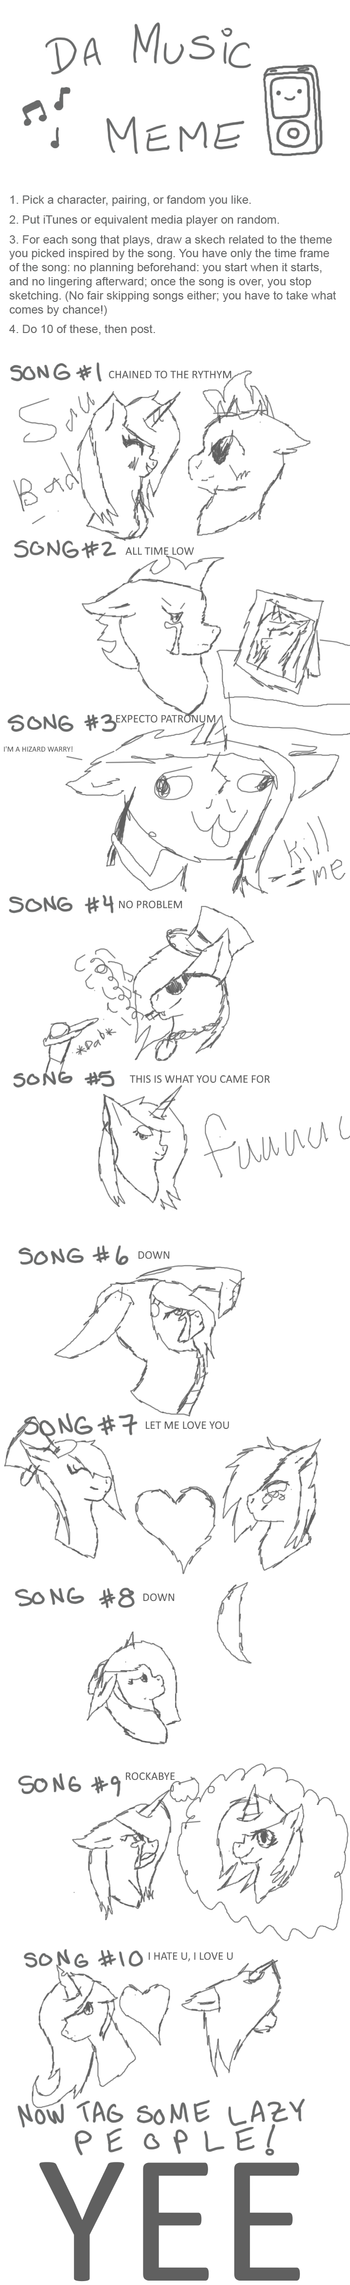 Music meme finished 2k17 by ZeonXeon